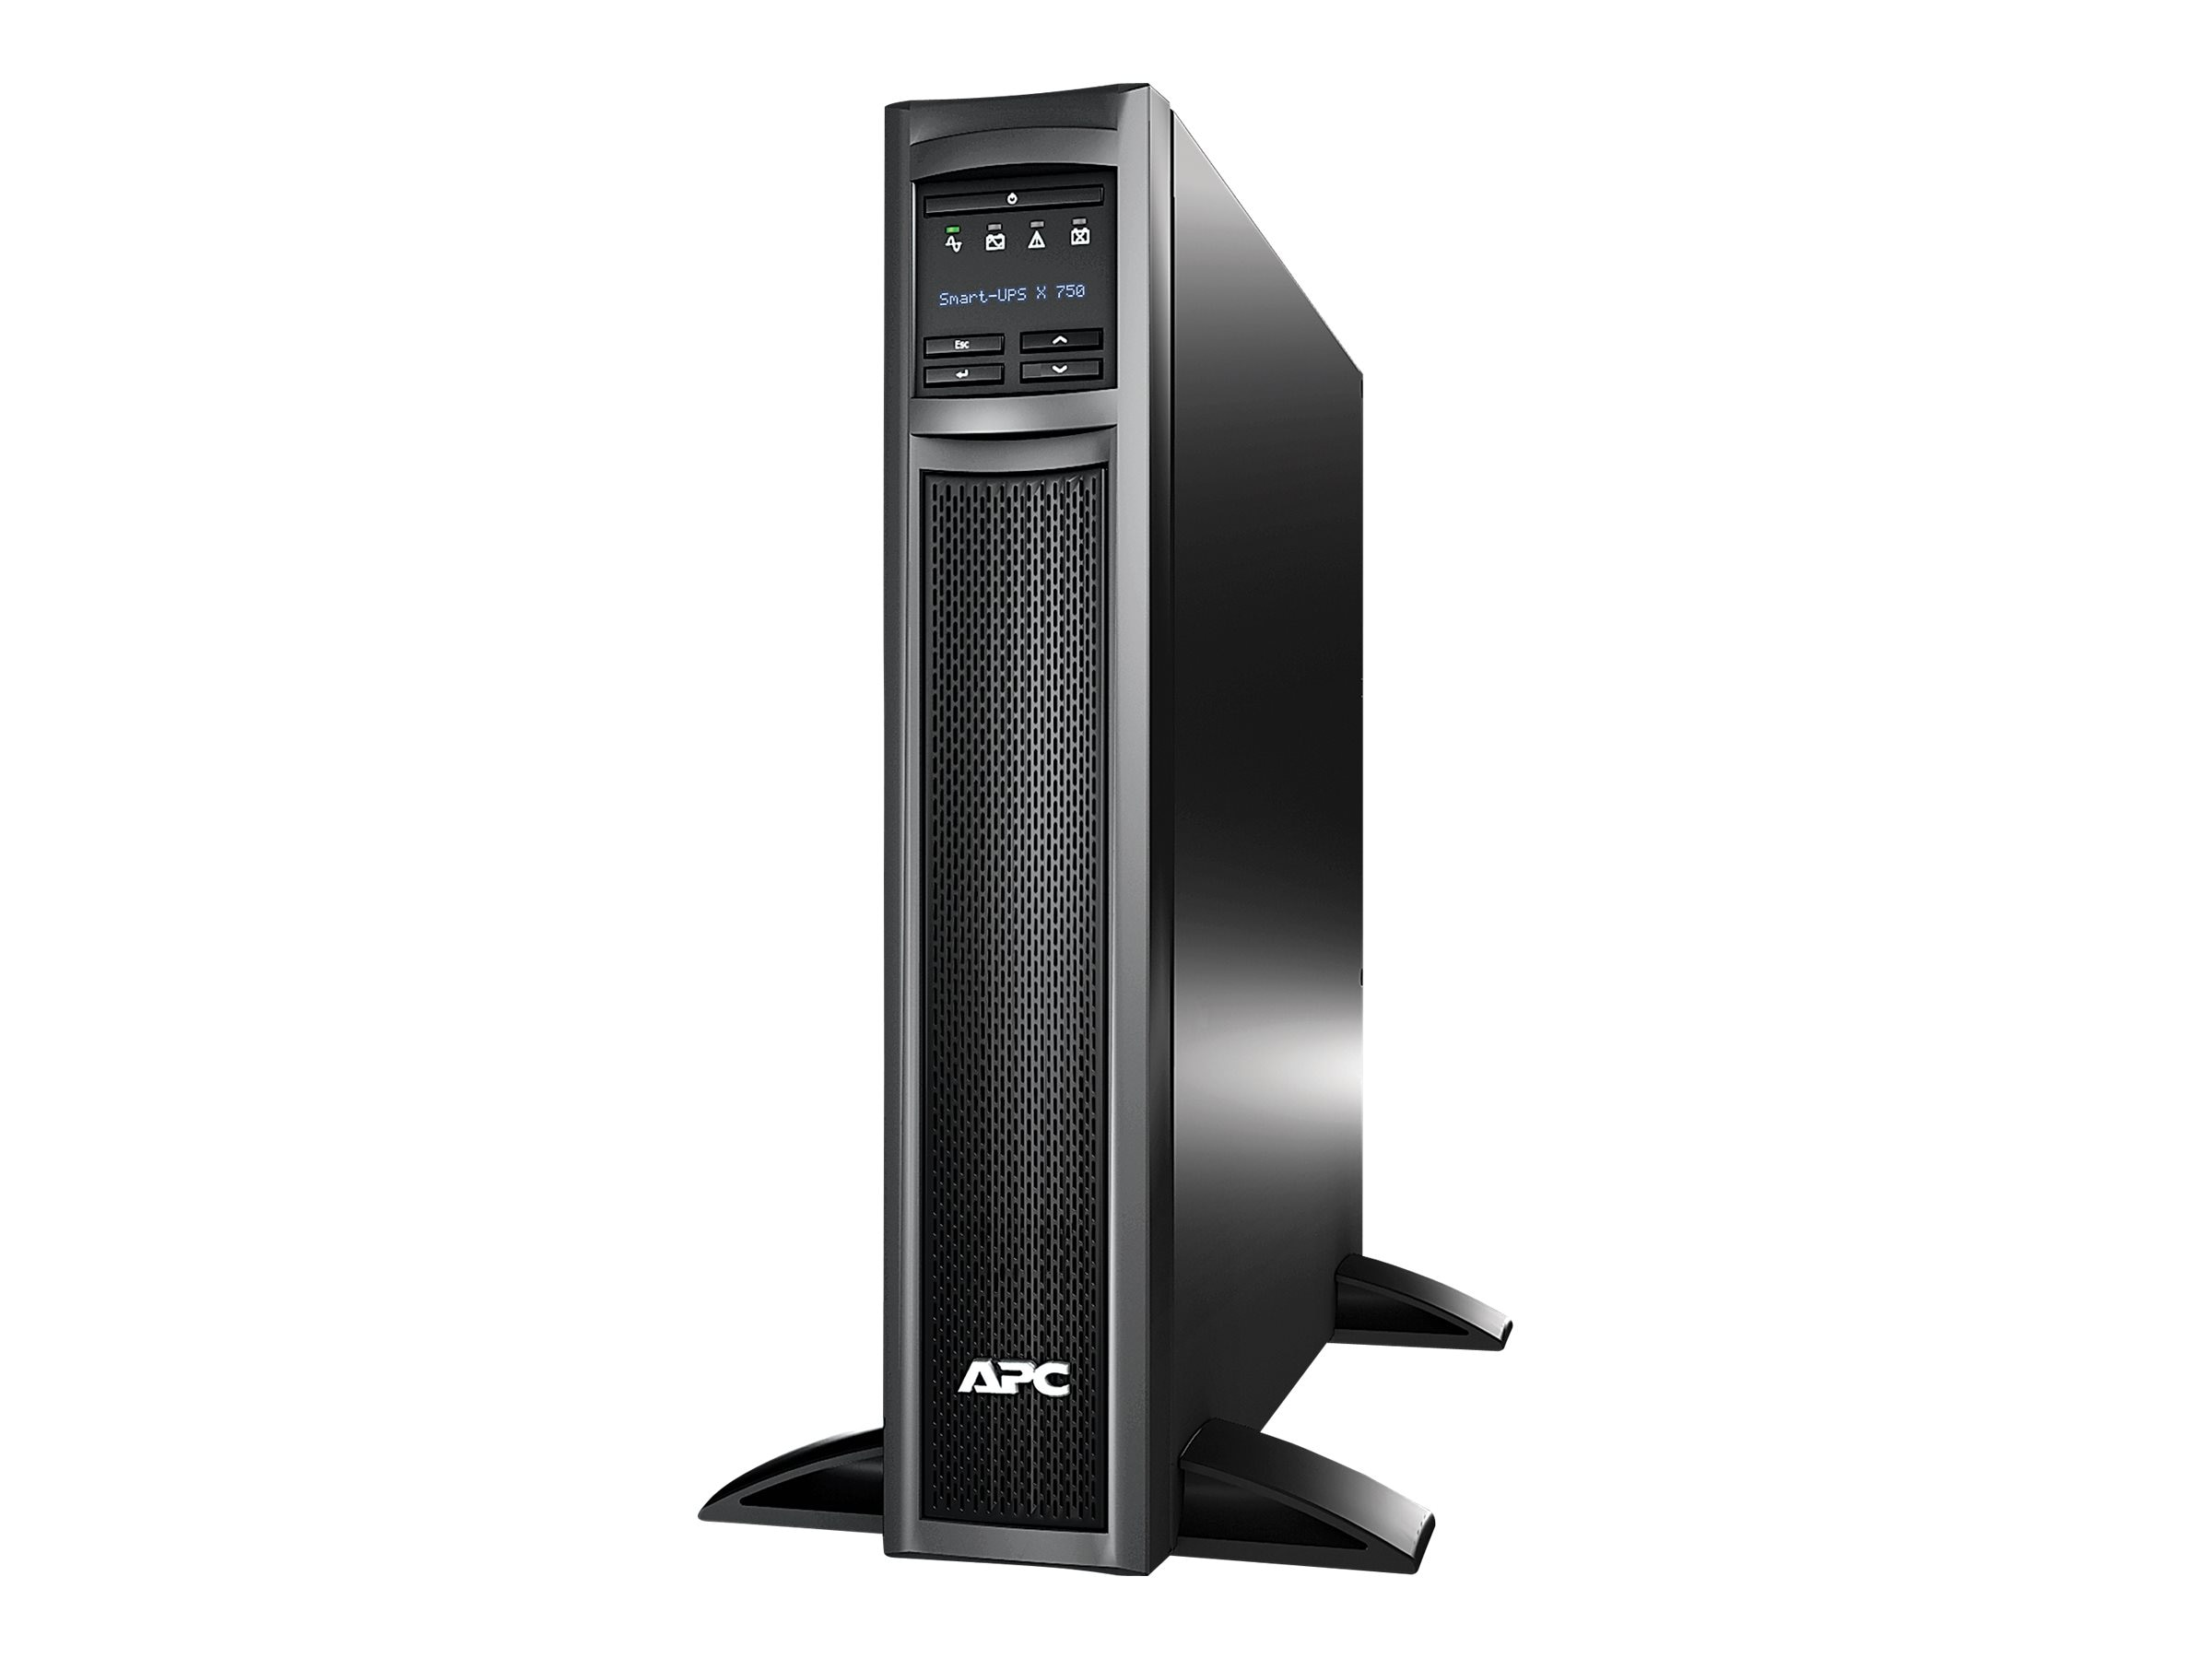 APC Smart-UPS X750VA 600W Rack Tower LCD 120V UPS (8) Outlets, SMX750, 10334493, Battery Backup/UPS